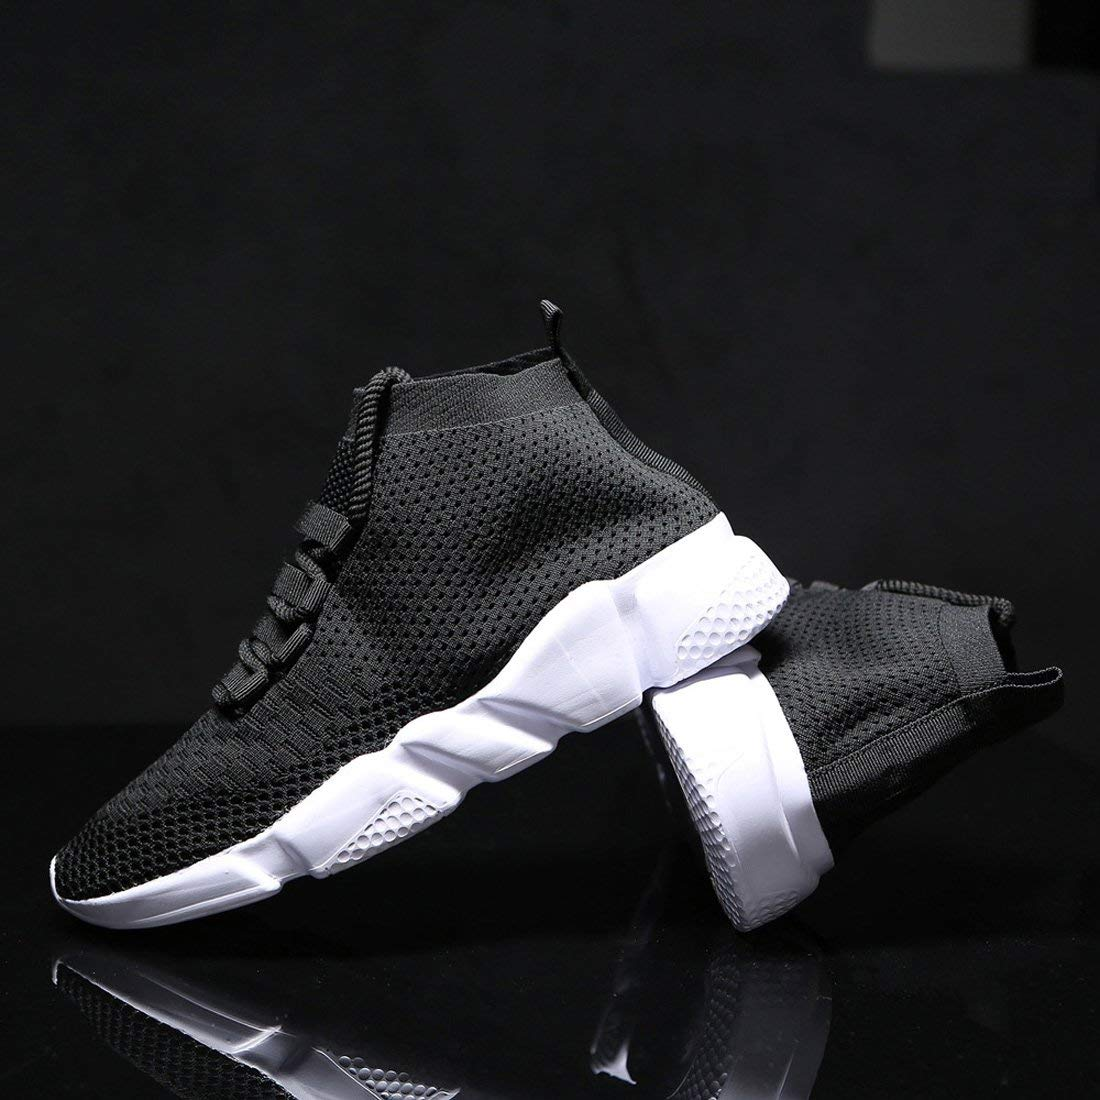 3700477227a21 Mevlzz Mens Casual Athletic Sneakers Knit Running Shoes Tennis Shoe for Men  Walking Baseball Jogging